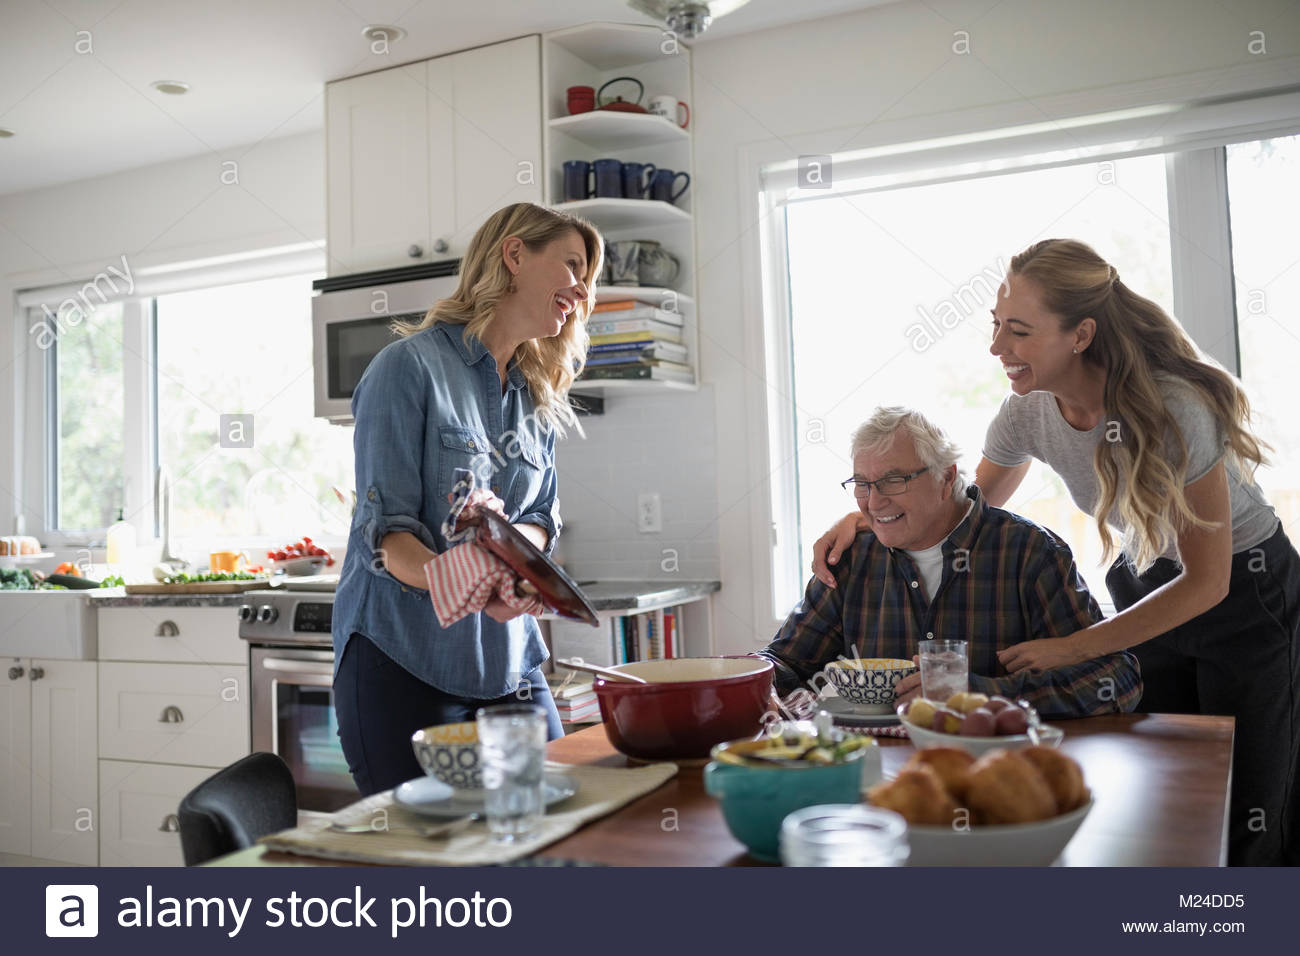 Smiling, affectionate daughters cooking for senior father at kitchen table - Stock Image